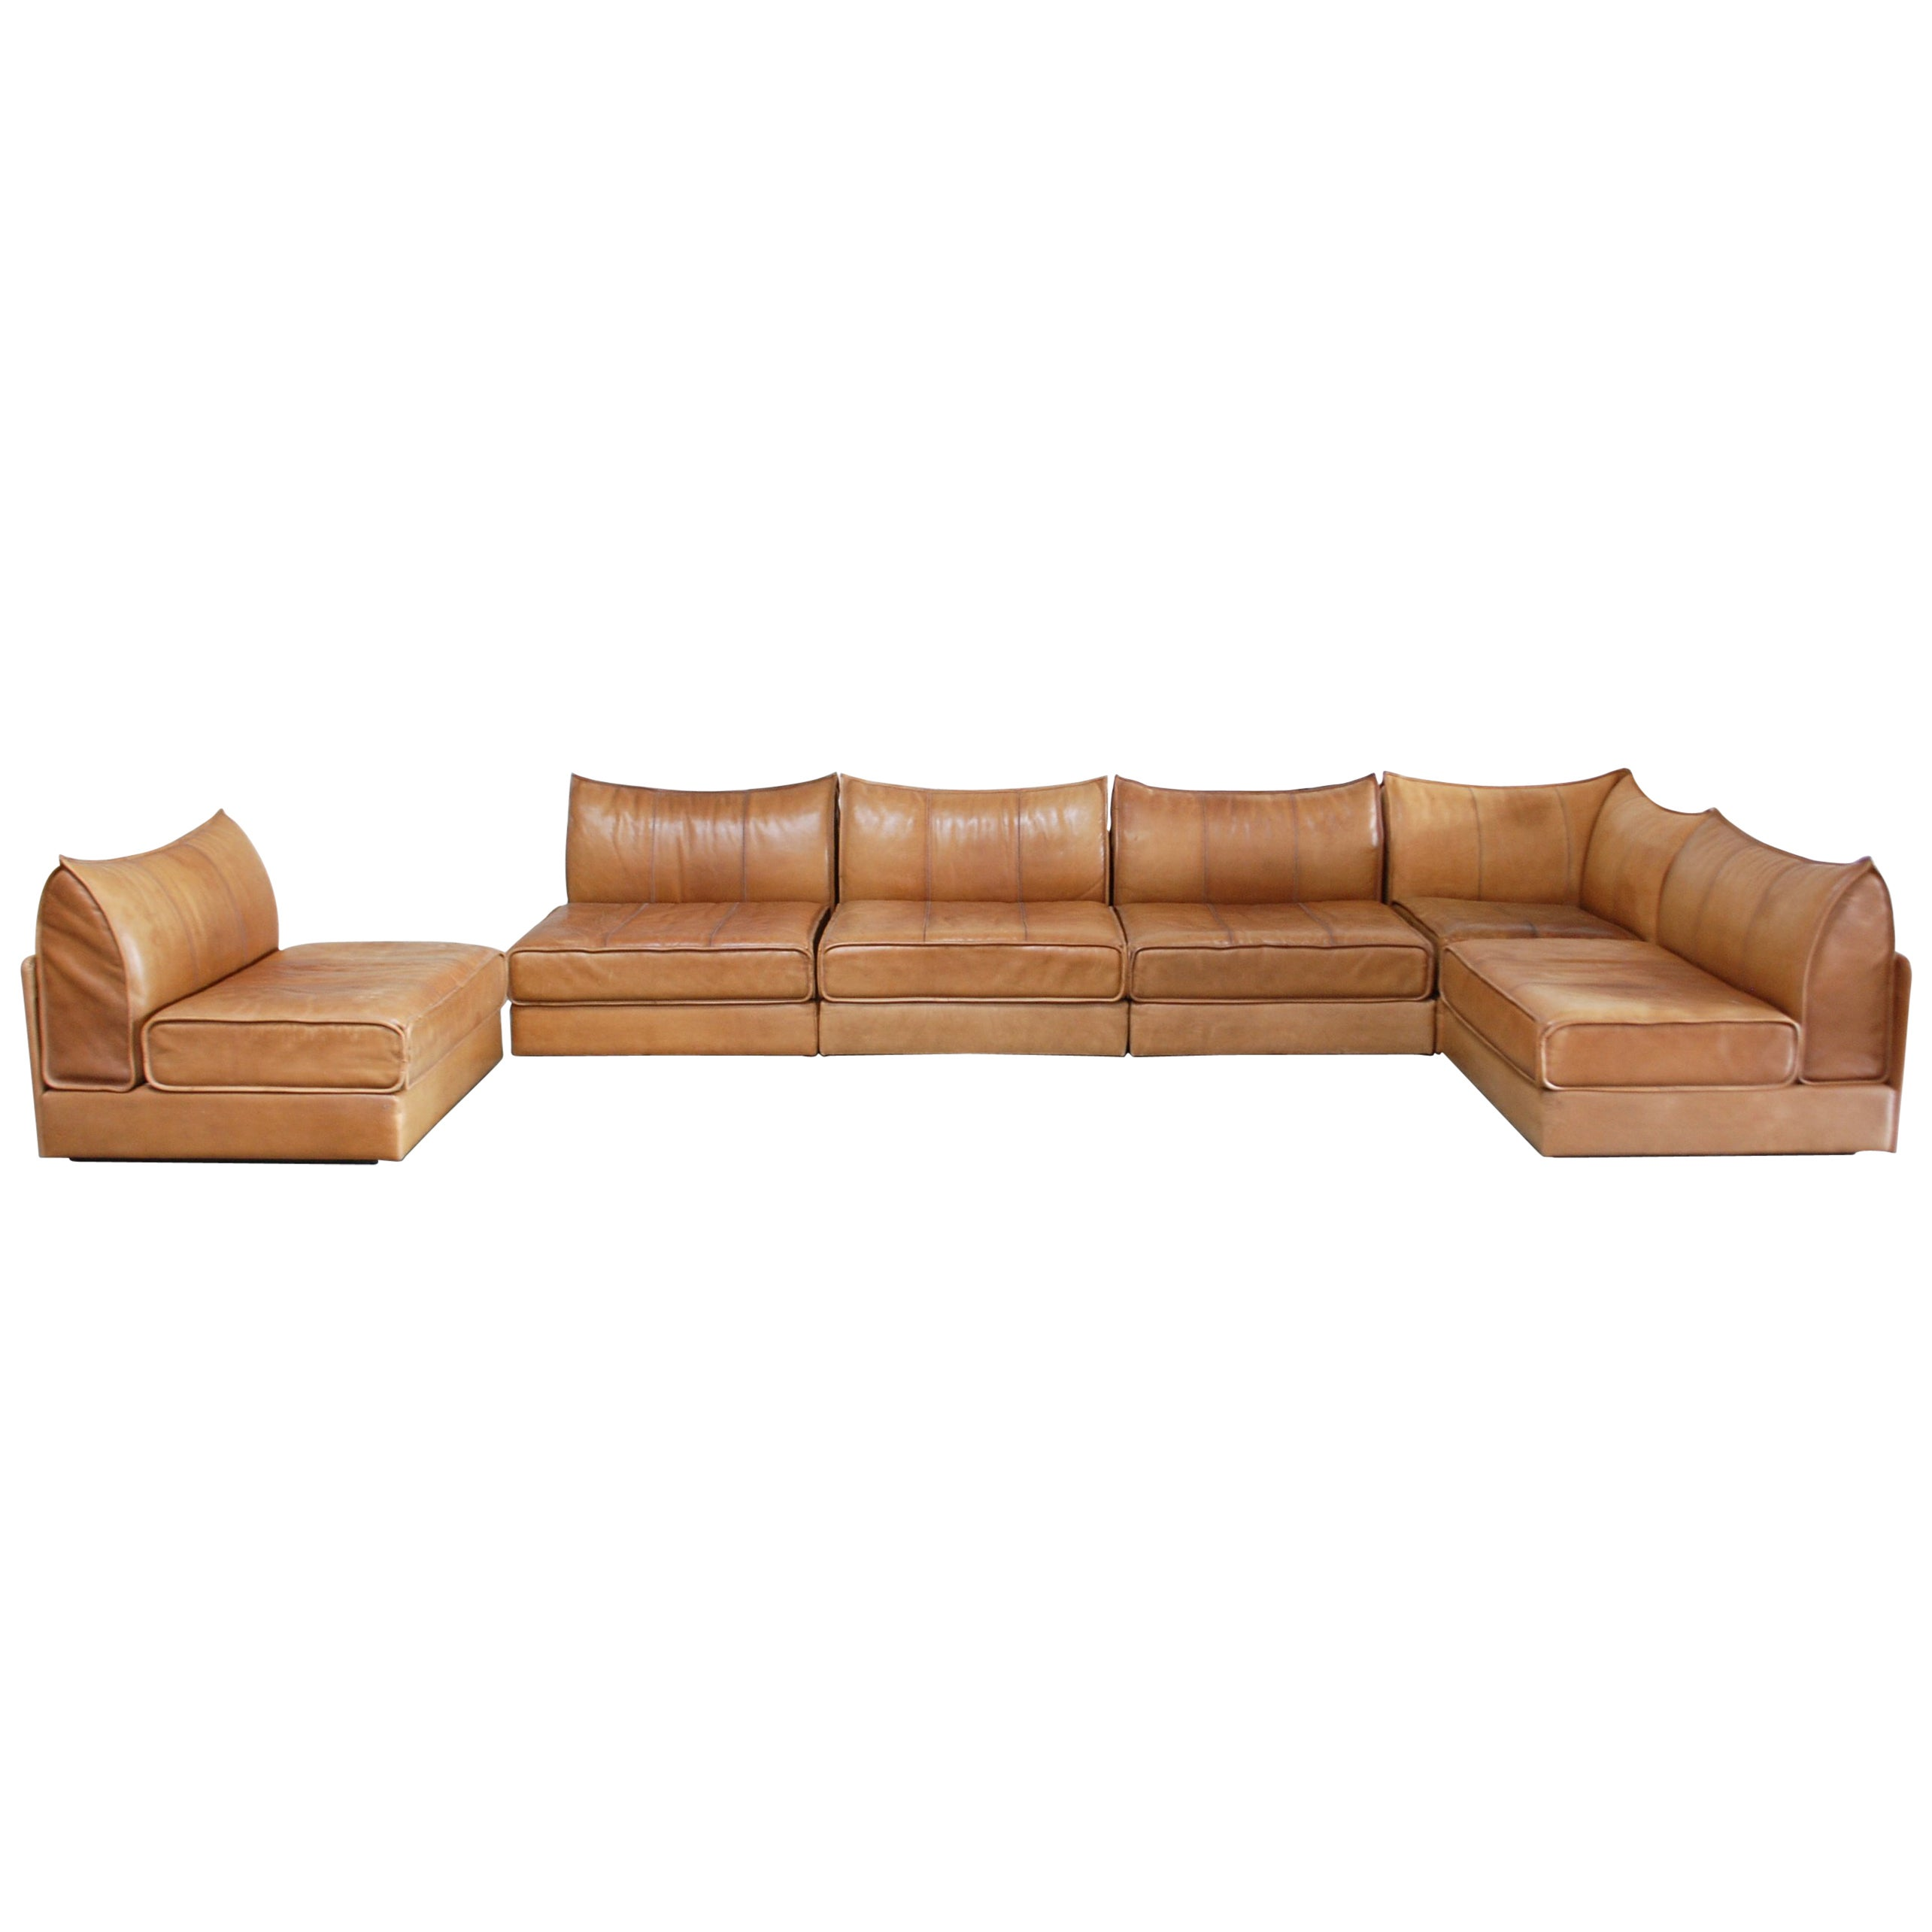 Walter Knoll Sessel Ebay Kleinanzeigen De Sede Modul Leather Sofa Ds 19 Living Room Cognac In 2019